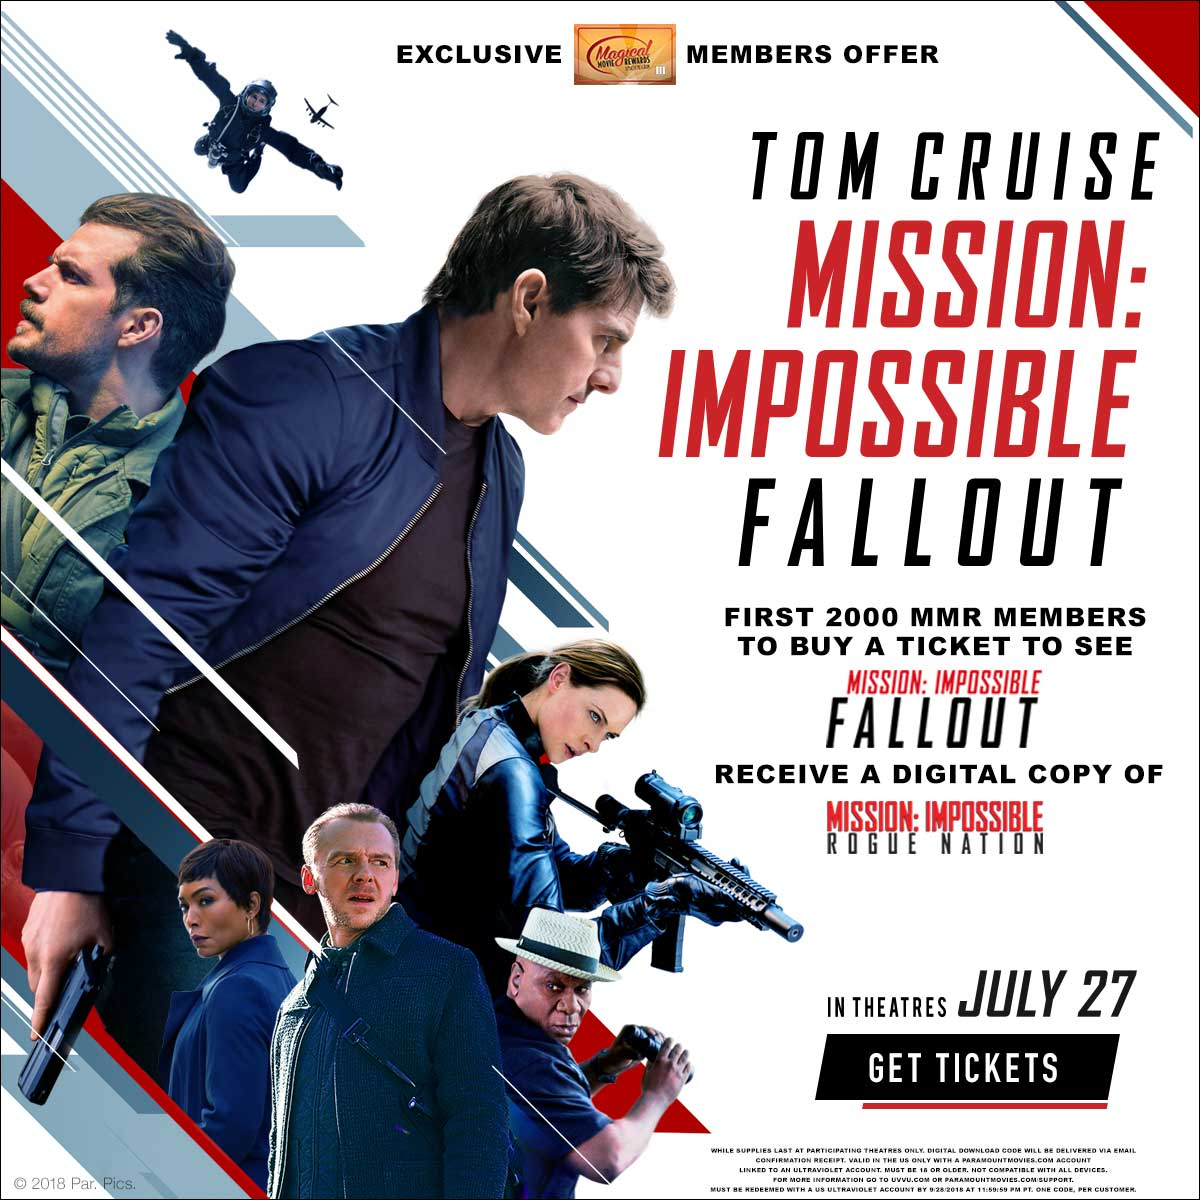 Mission impossible 1 full movie hd free download | [MOVIE